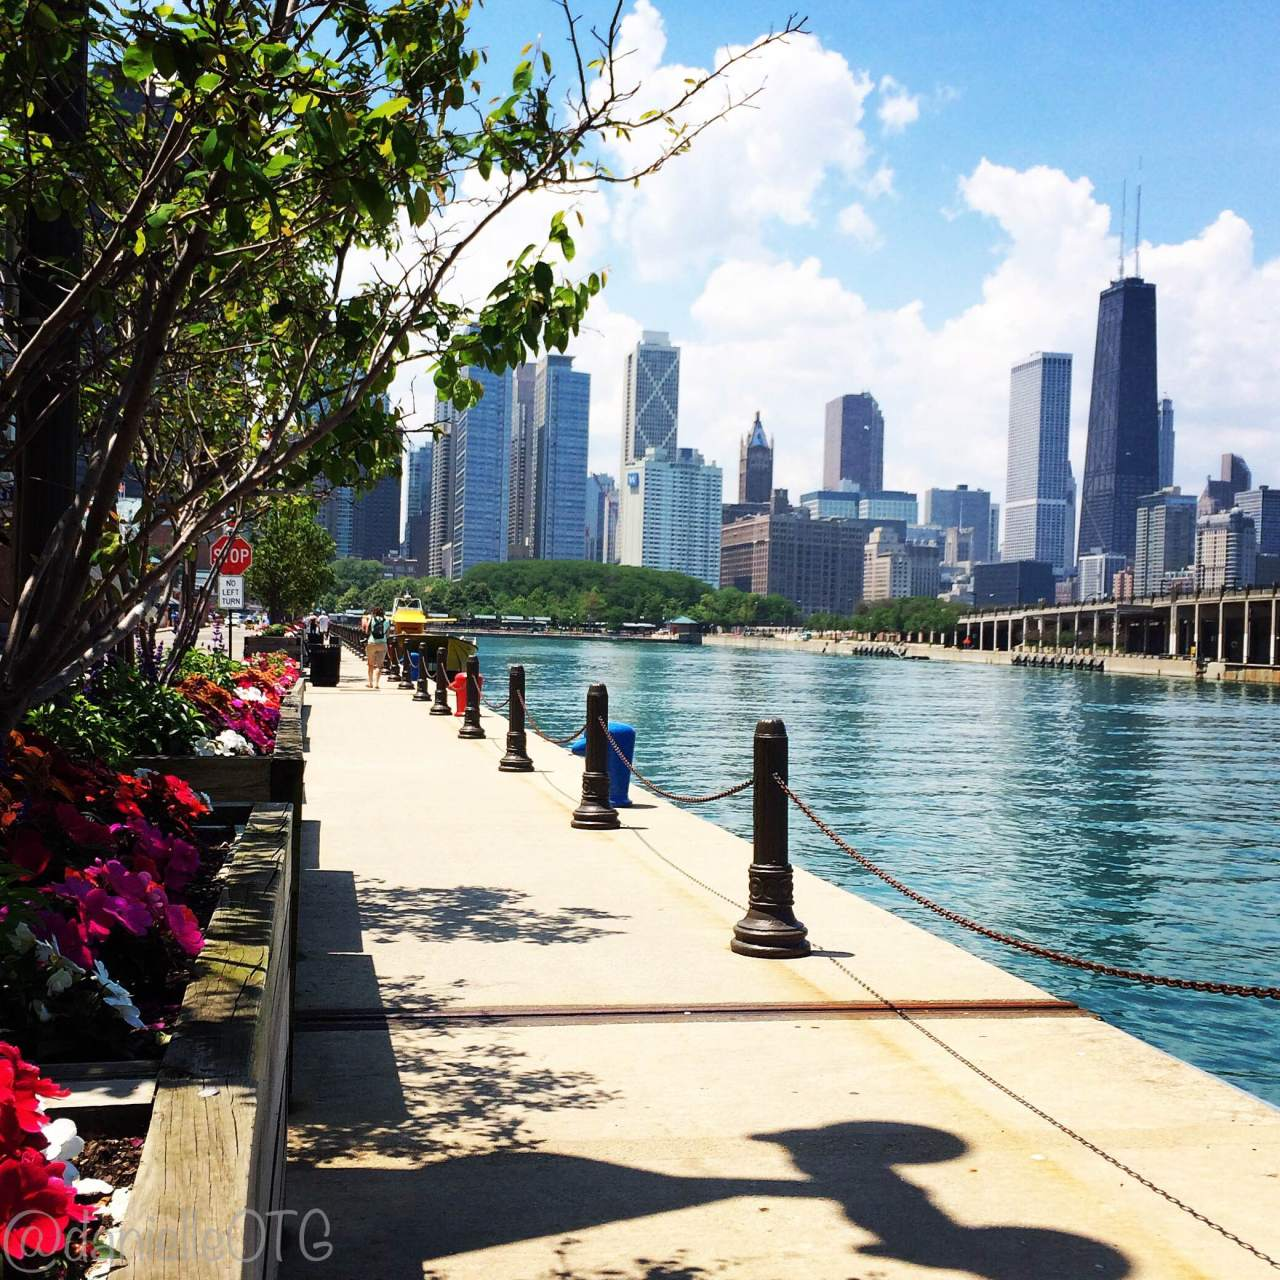 Today's on the Go Photo: Summertime inChicago